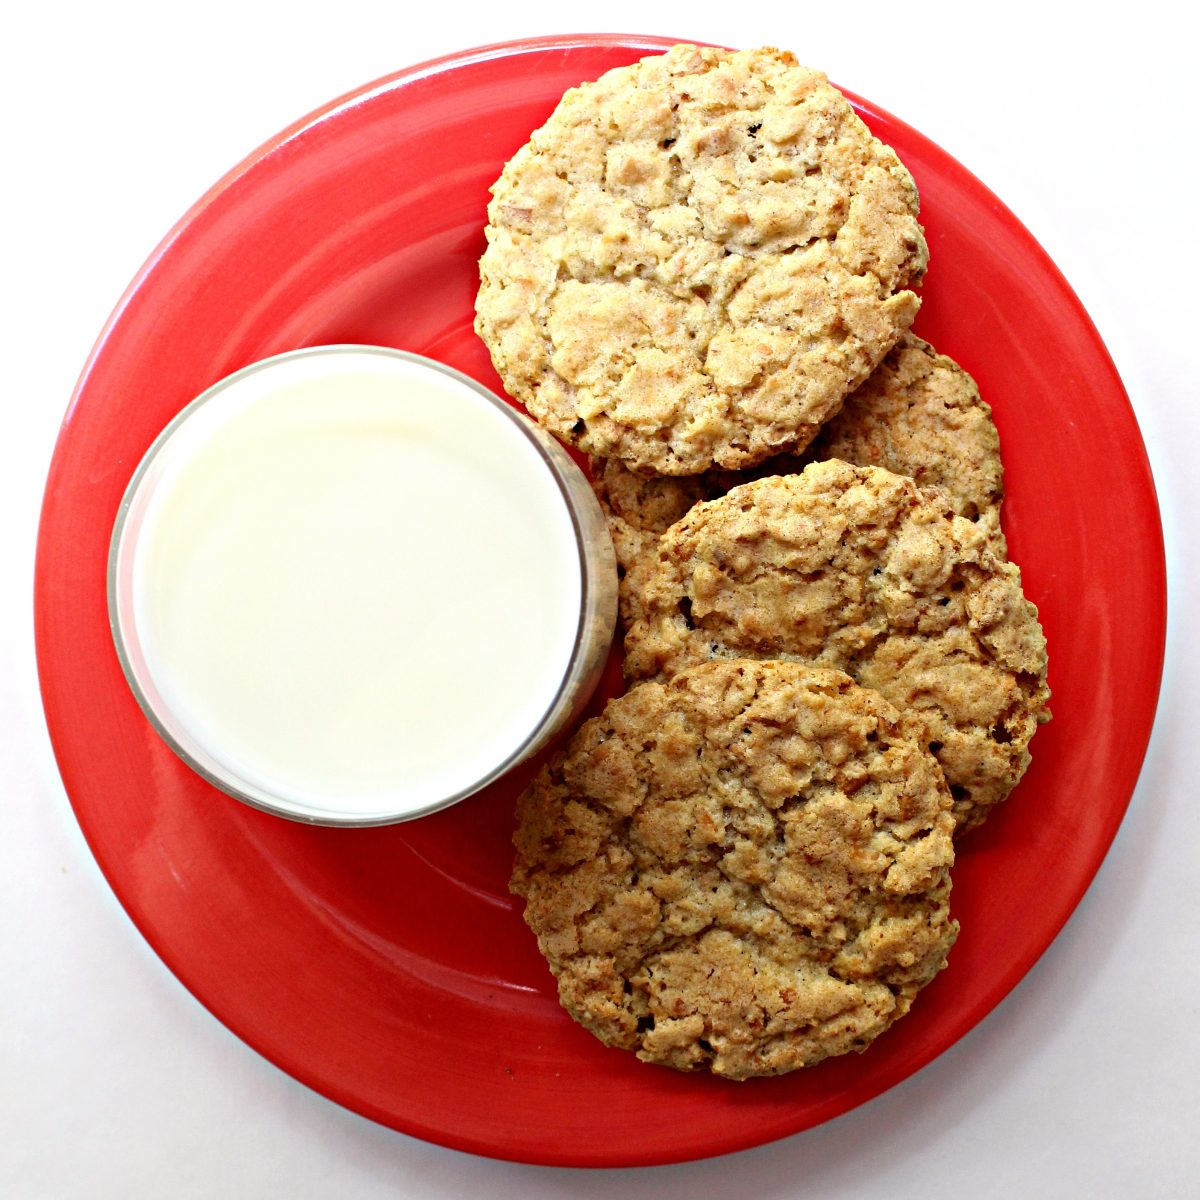 Roasted Coconut Crunch Cookies on a red plate with a glass of milk.